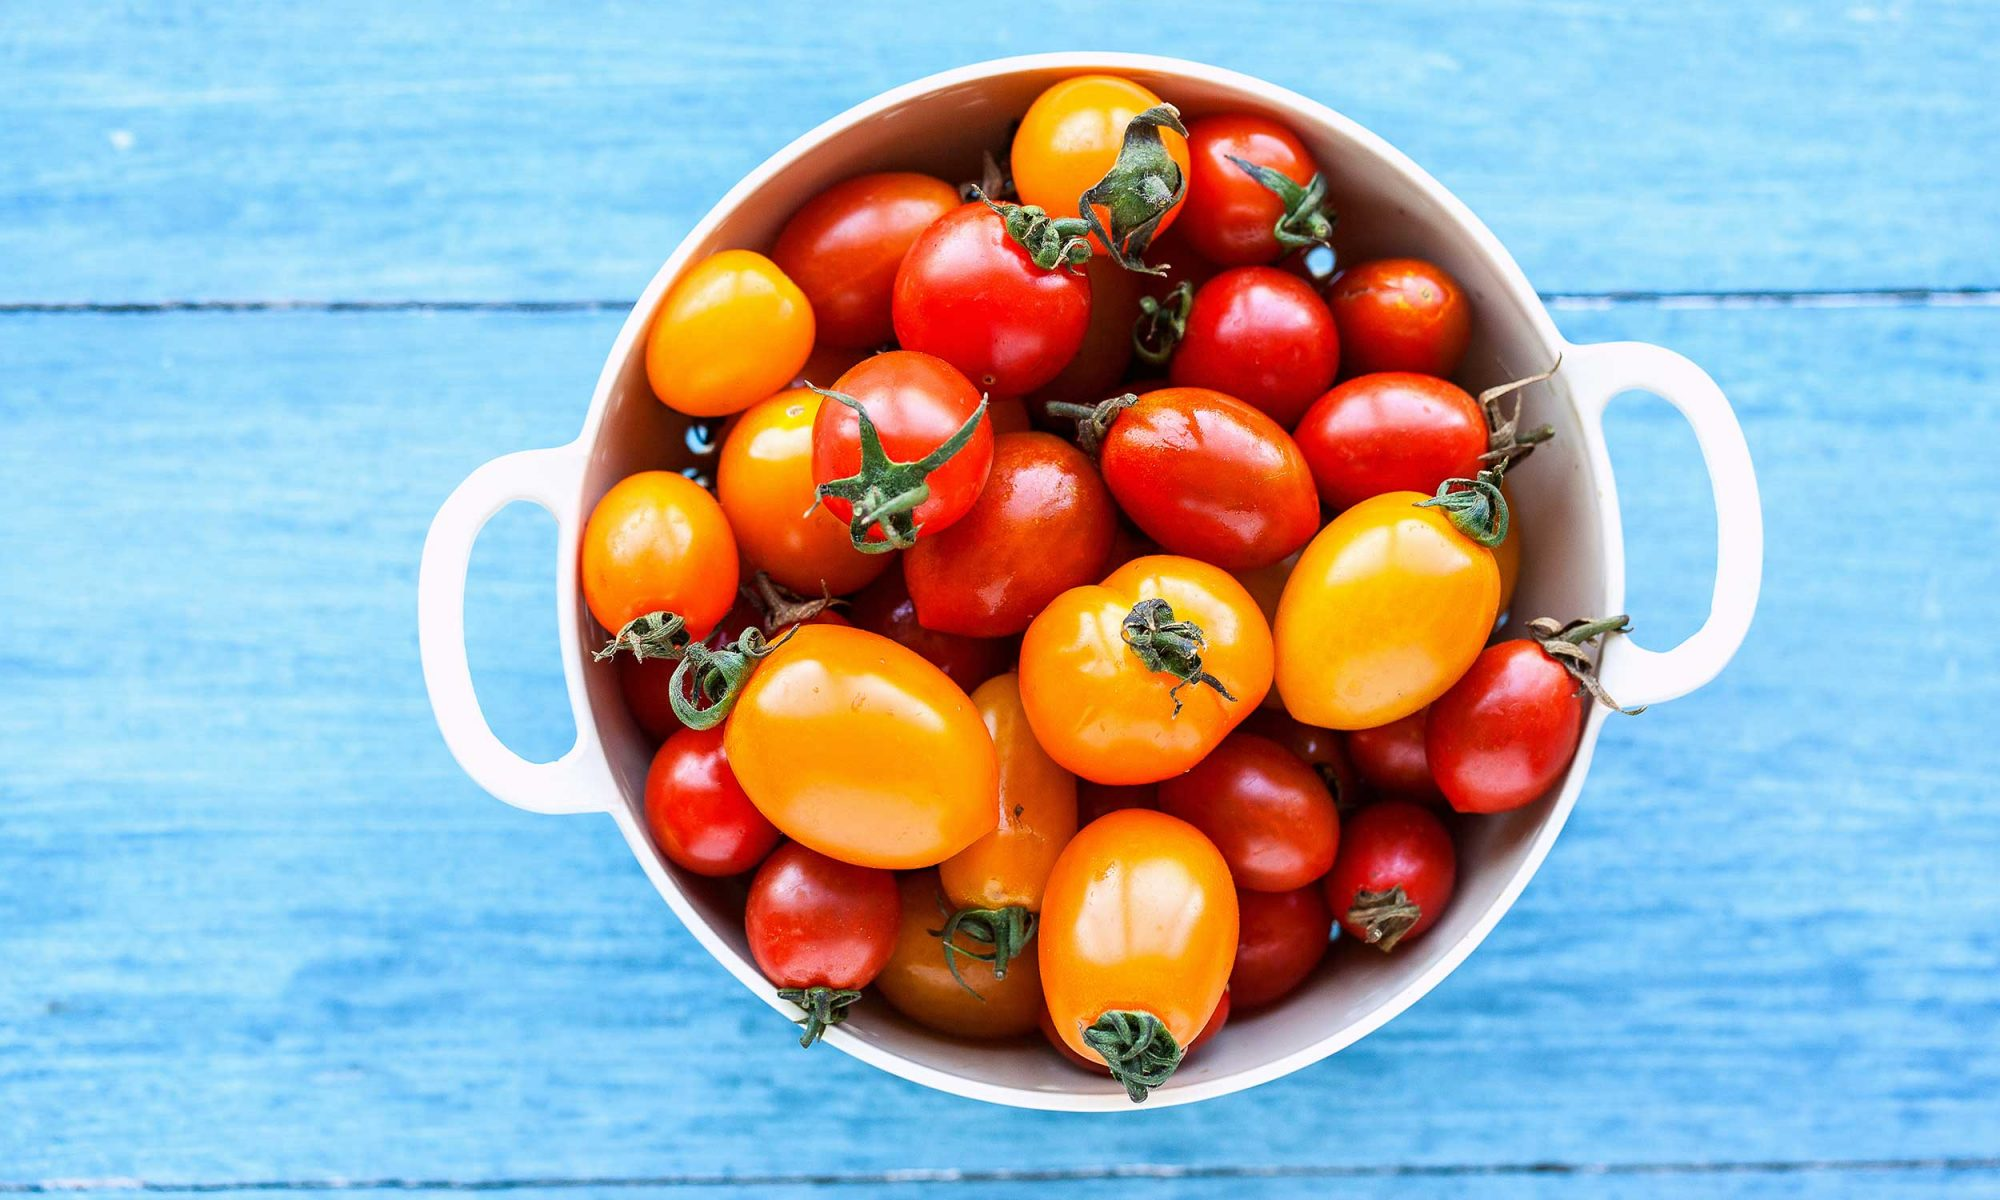 EC: Why Do Some People Hate Raw Tomatoes?